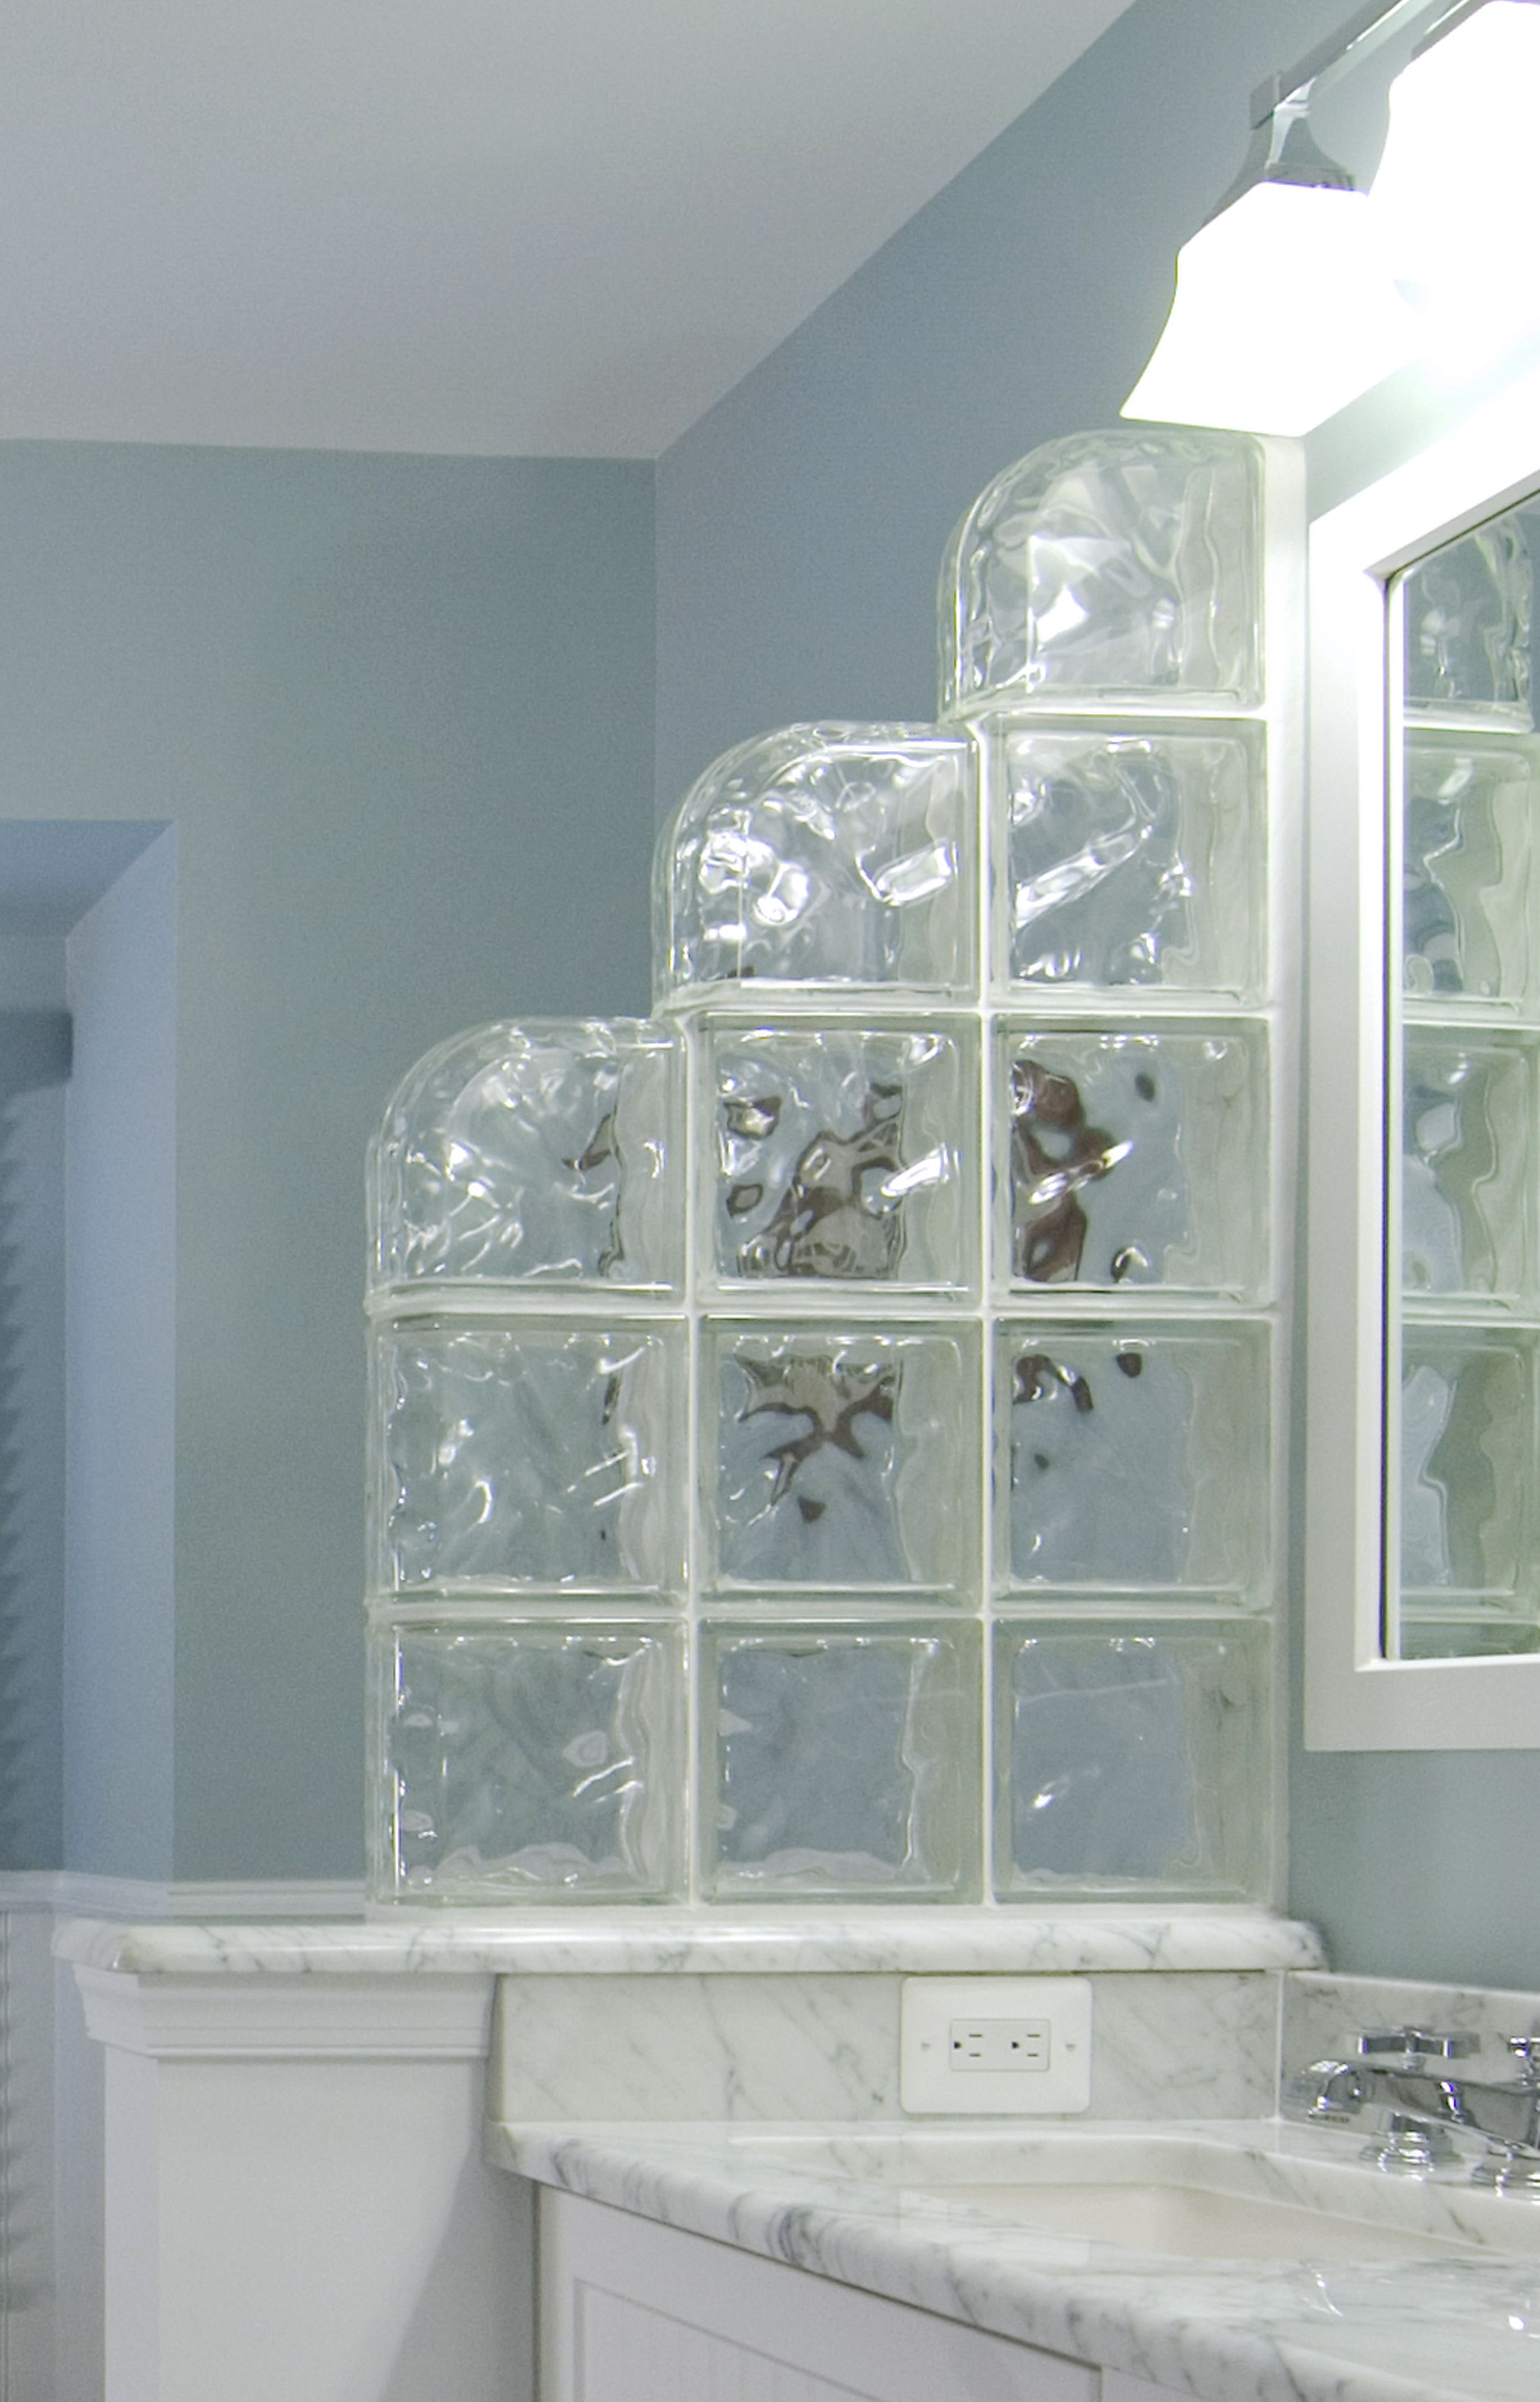 Bathroom dividers glass - The Glass Block Divider In This Bathroom Offers Privacy Between The Sink Area And Toilet